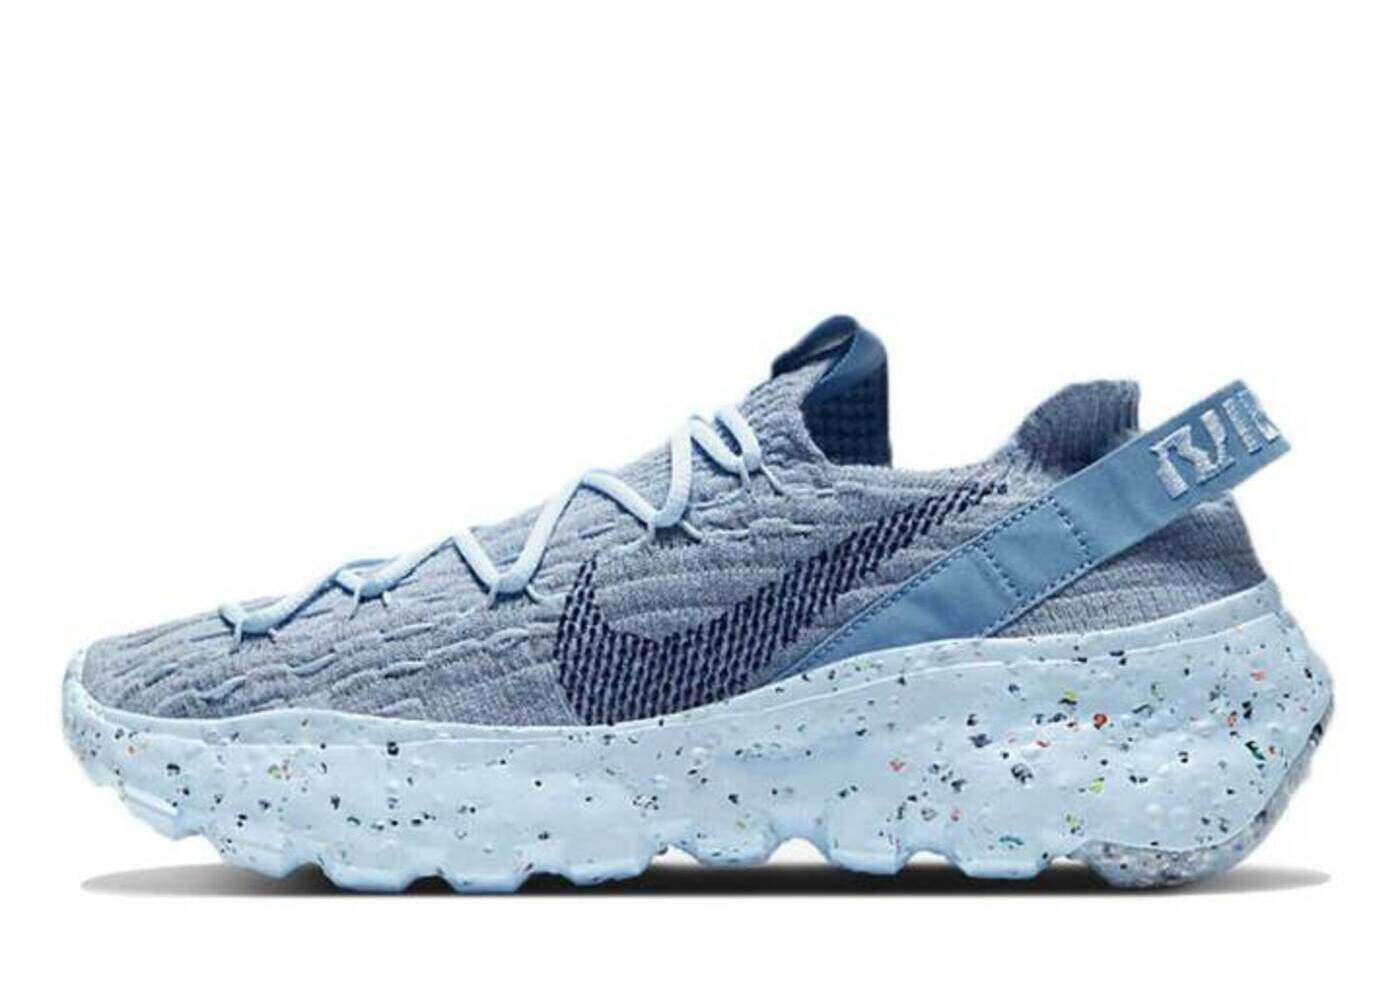 Nike Space Hippie 04 Womens Chambray Blueの写真